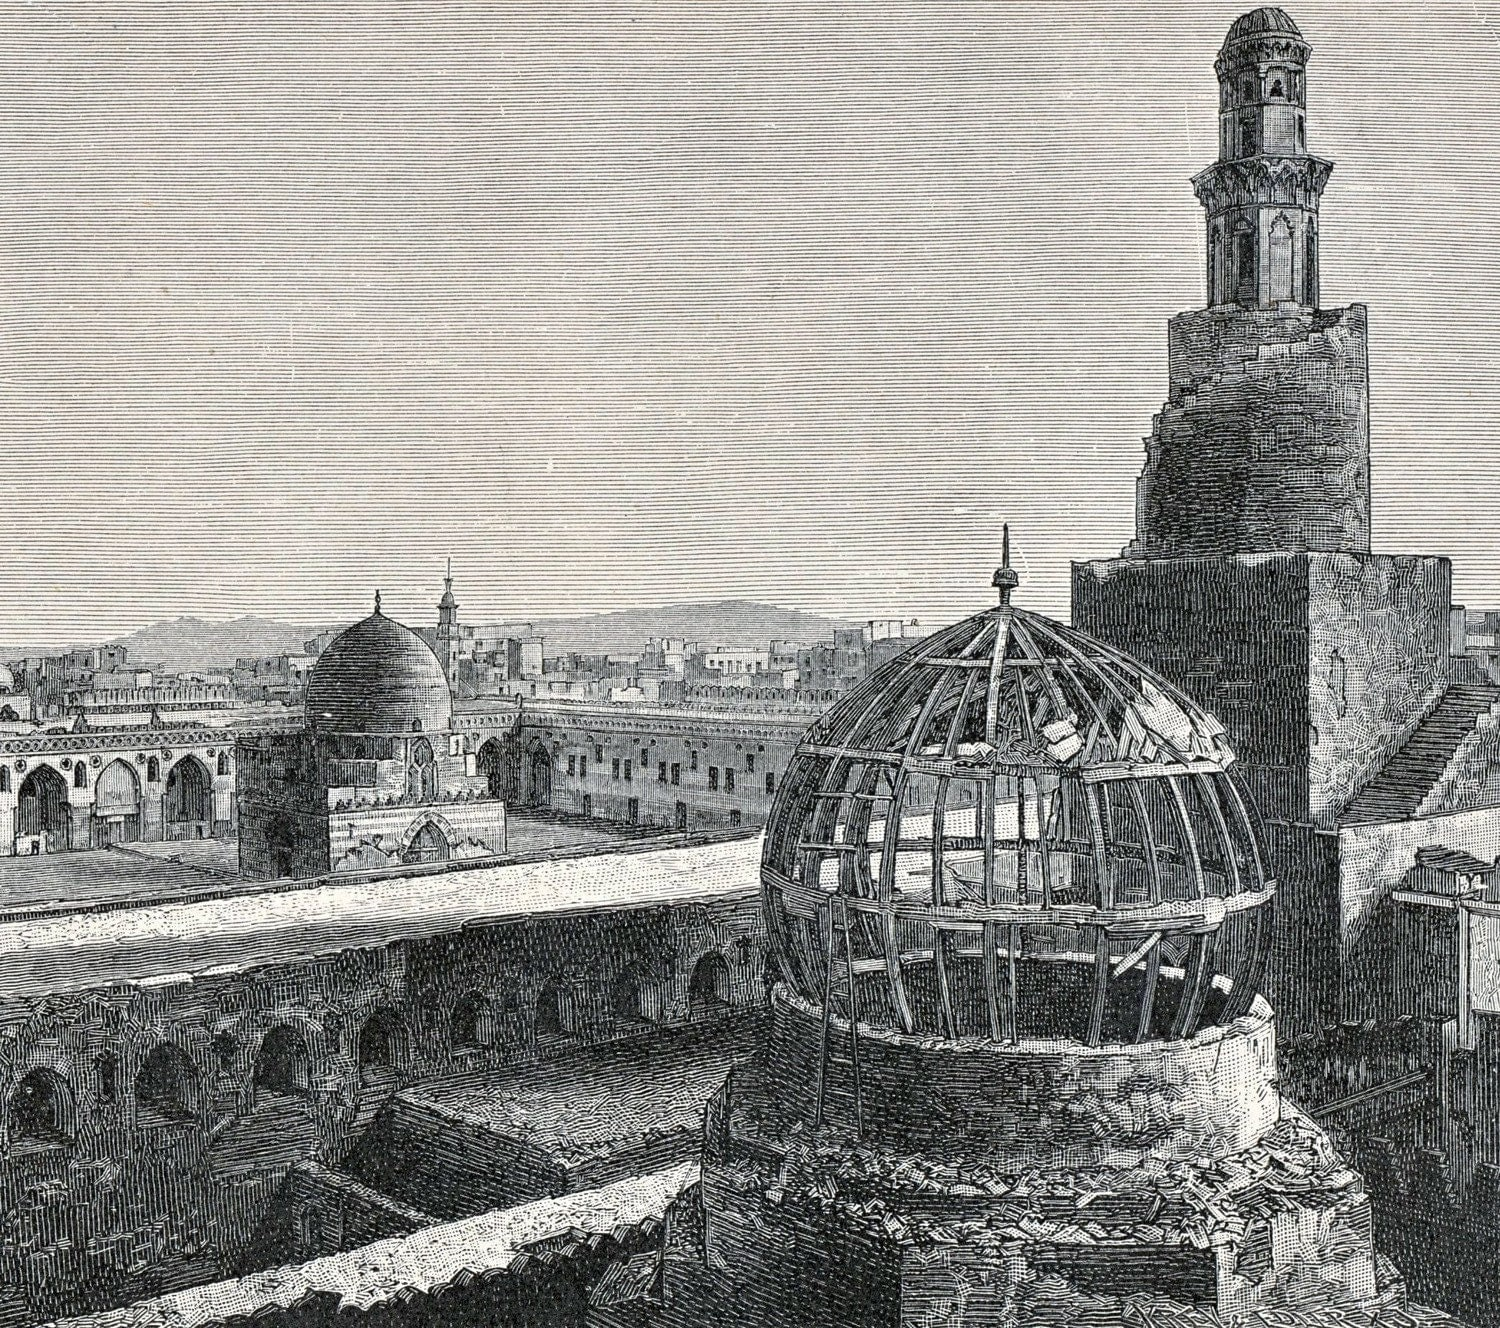 1886 German Antique Engraving. The Mosque of Ibn Tulun, Cairo, Egypt - bananastrudel